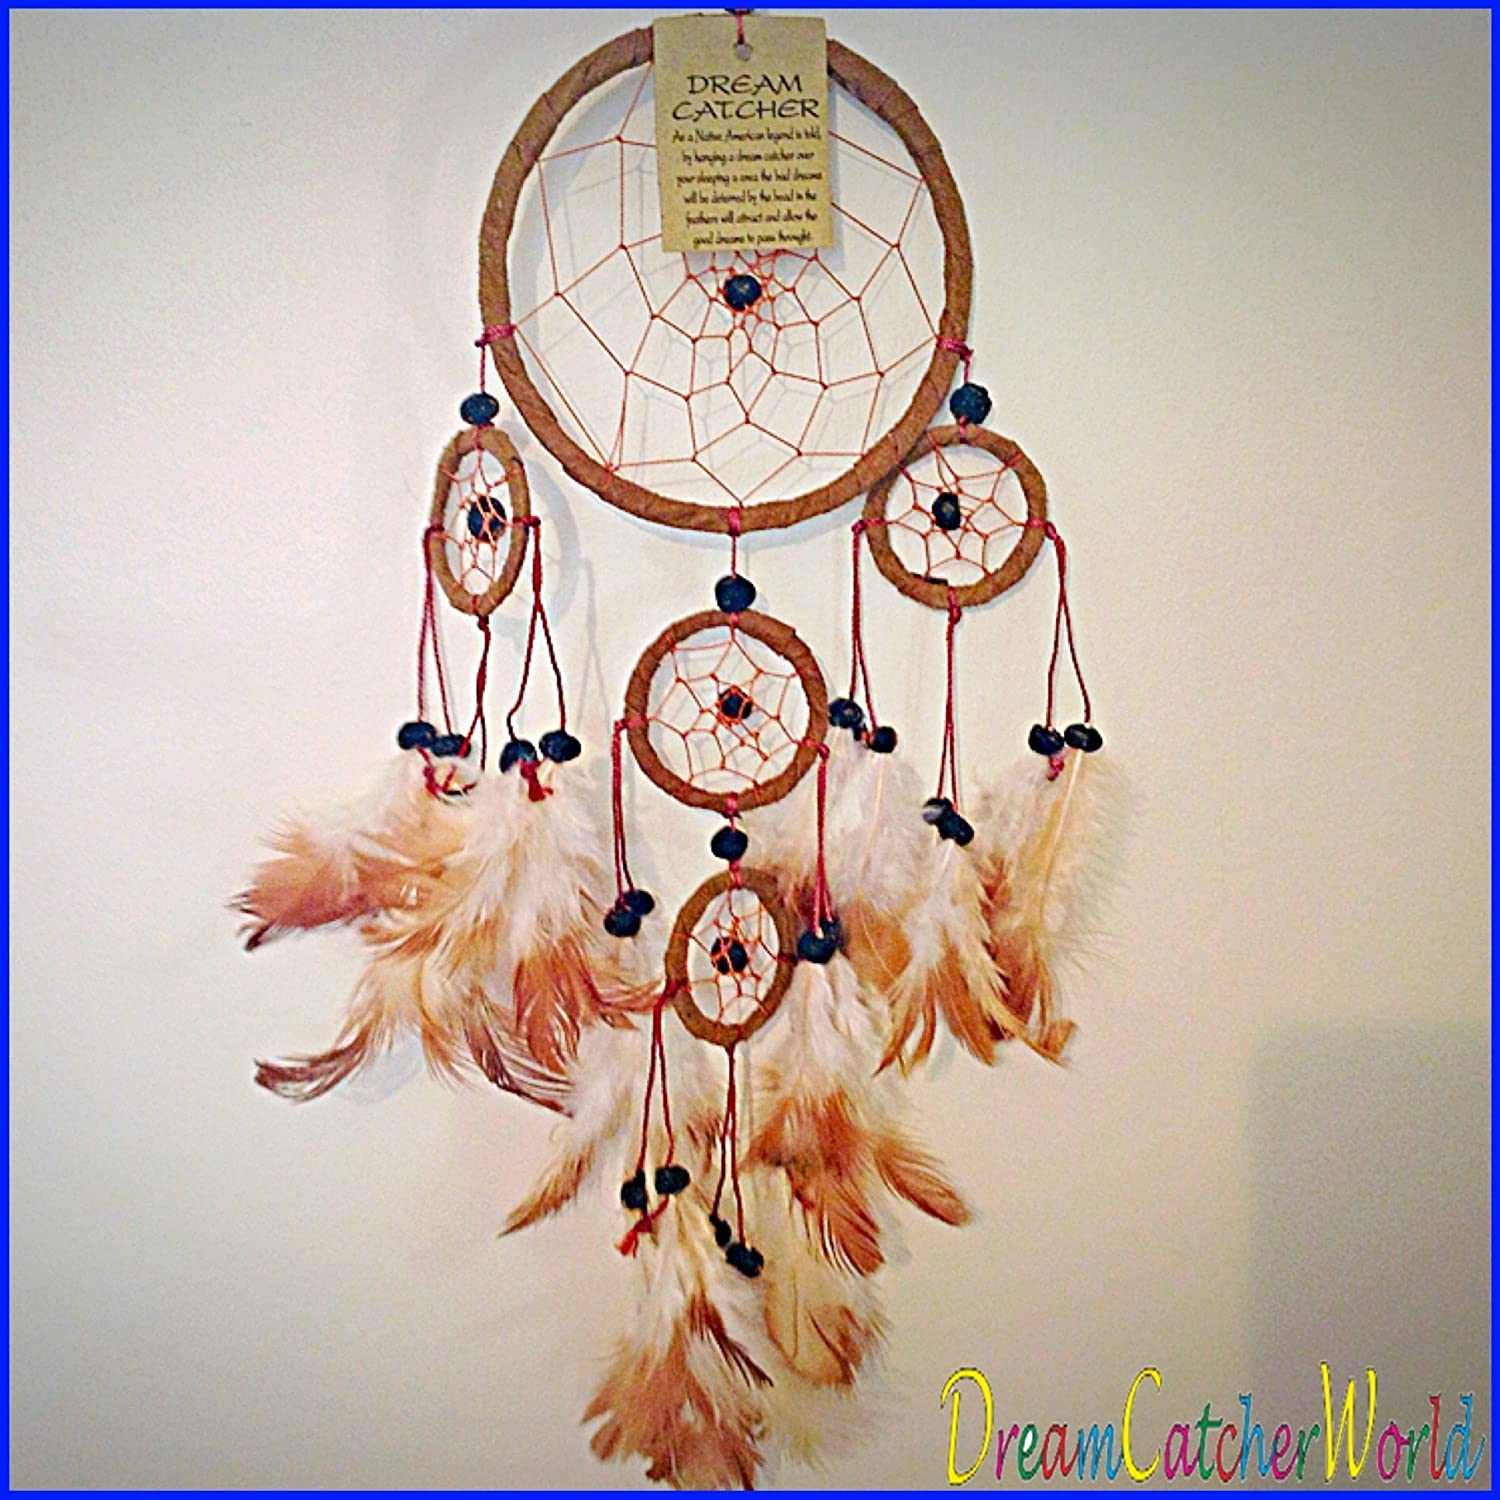 BLACK WHITE BROWN LEATHER SUEDE DREAM CATCHERS KIDS ROOM HANGING DECOR ALL HANDMADE (Brown) TPGSUK